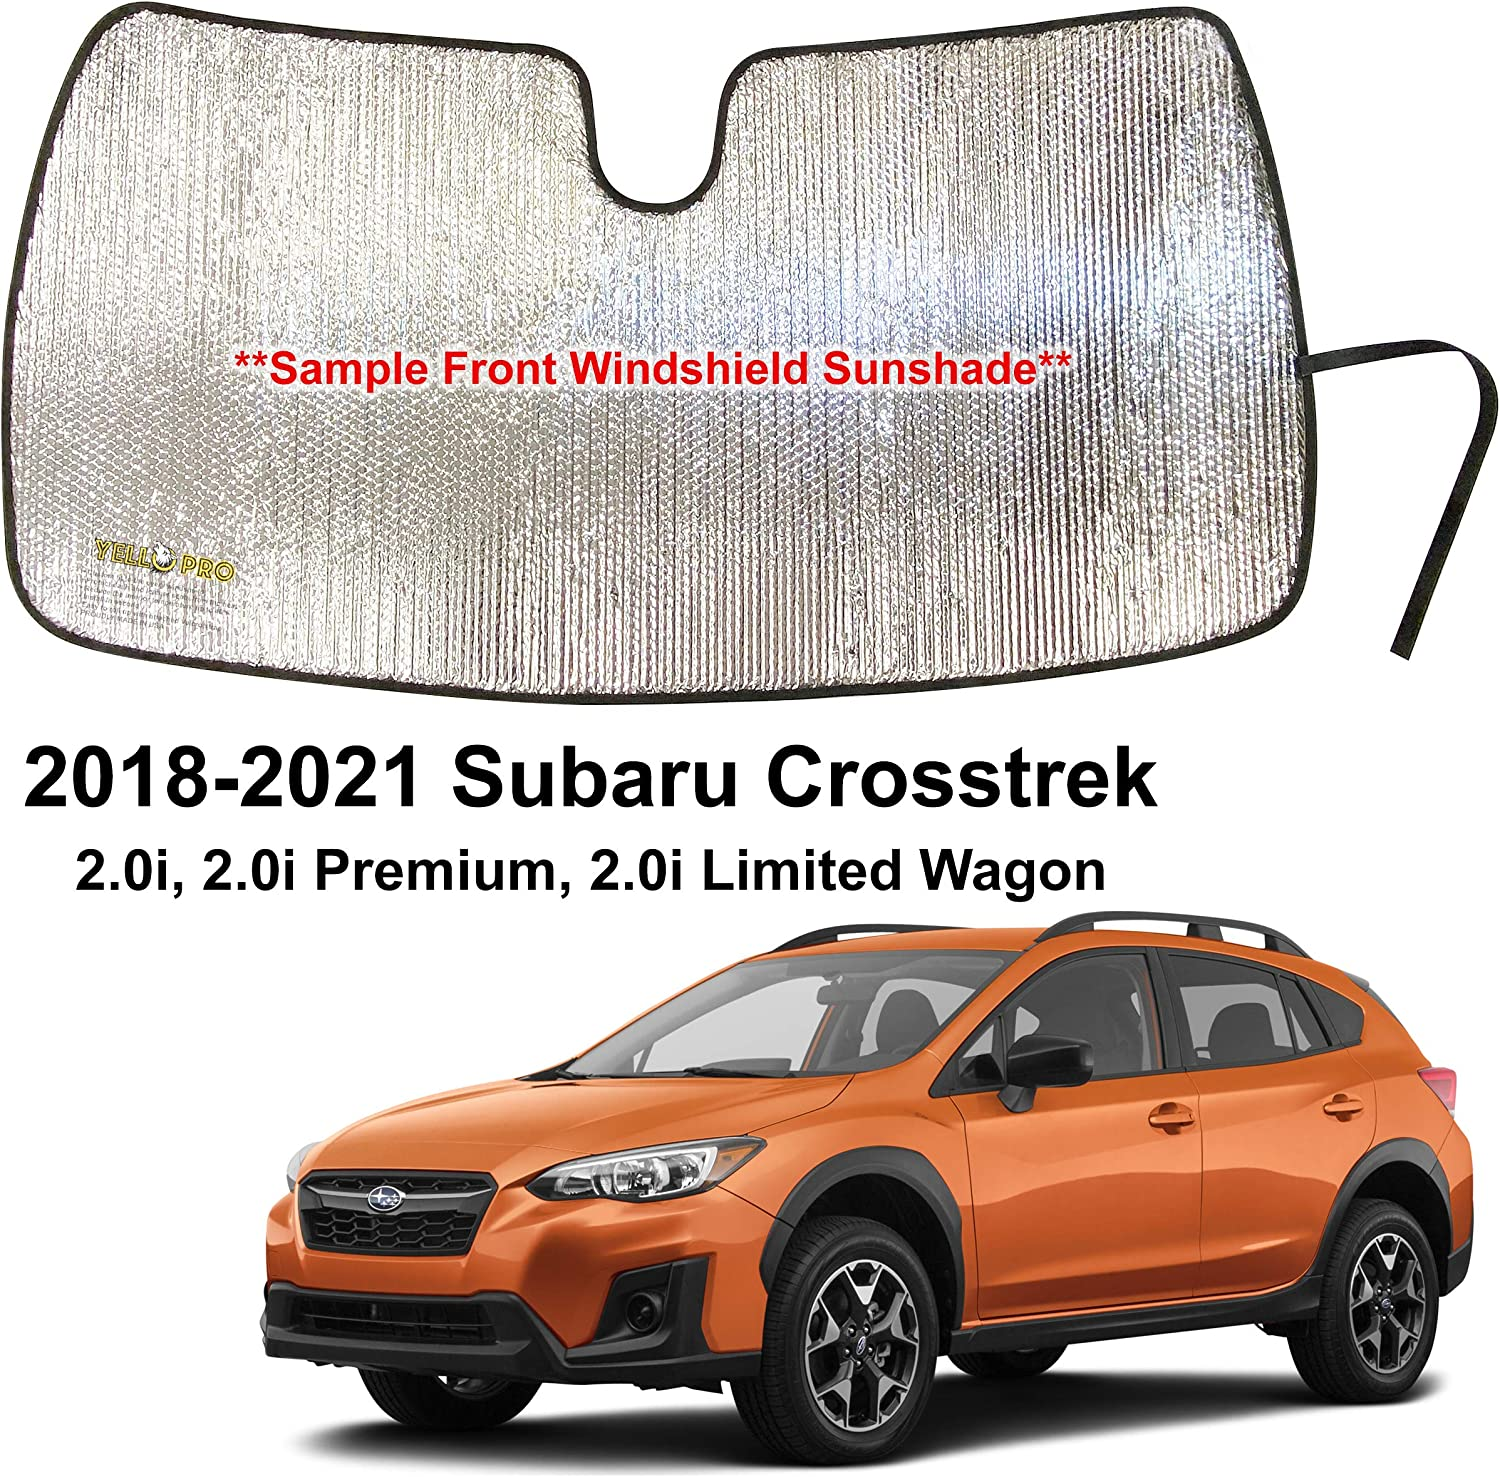 YelloPro Custom Fit Automotive Reflective Front Windshield Sunshade Accessories for 2014 2015 2016 2017 2018 2019 2020 Jeep Grand Cherokee Laredo Limited Trailhawk Overland Altitude Summit SUV